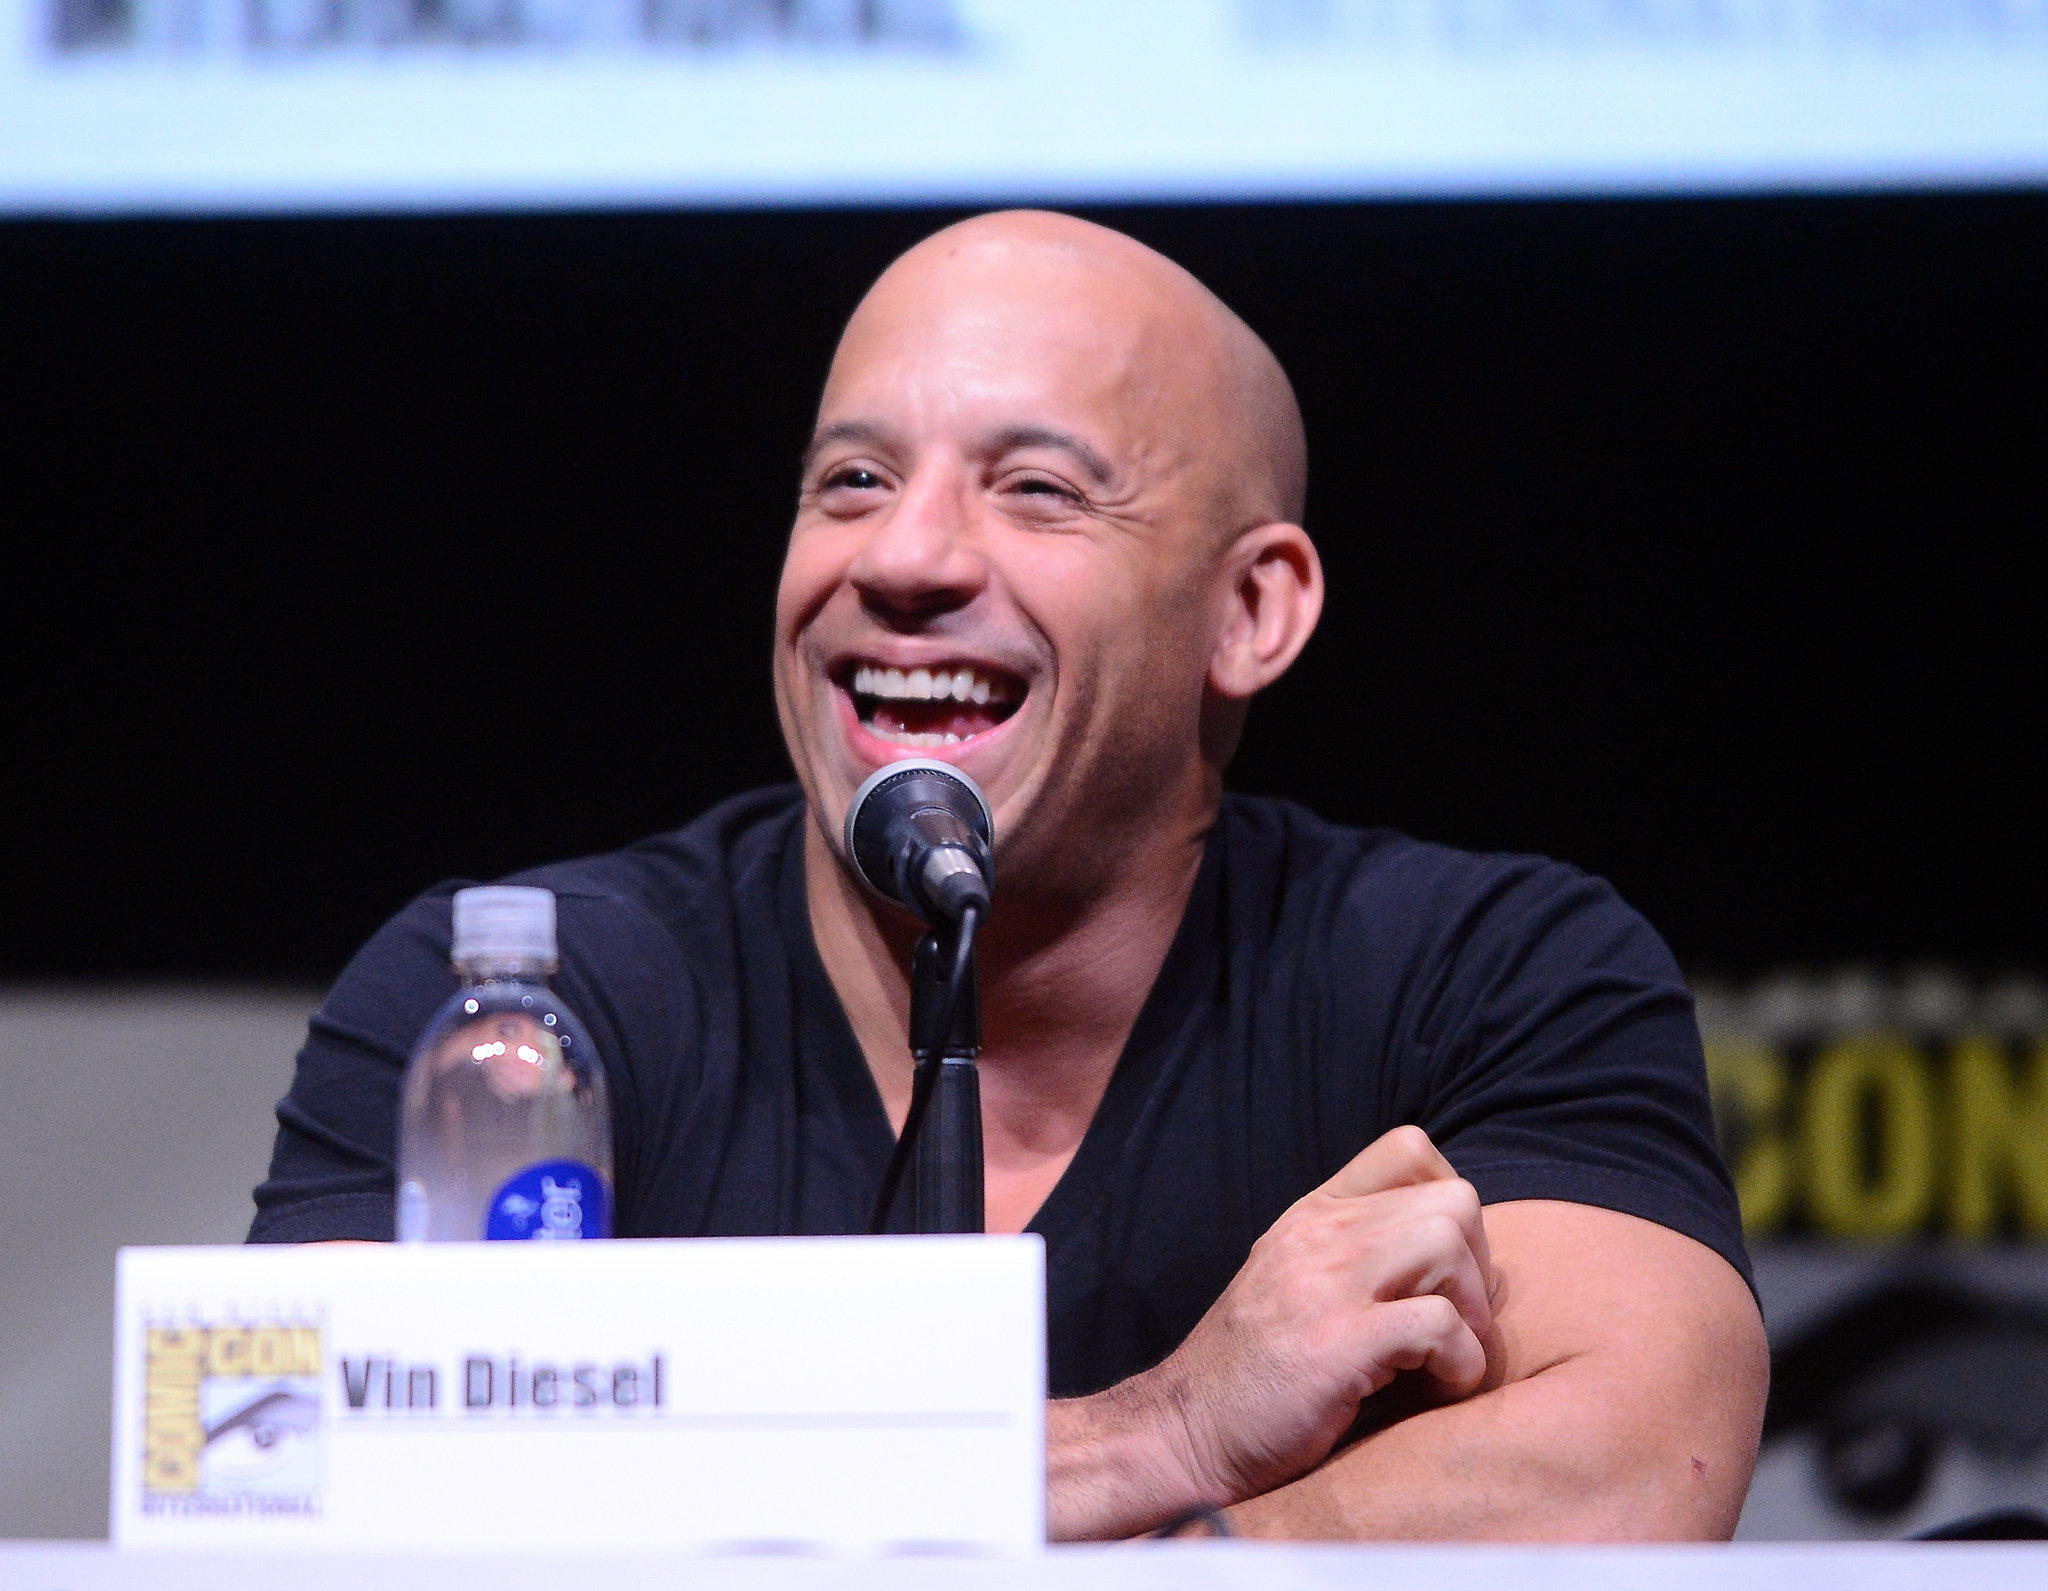 Vin Diesel went to a panel for Riddick on Friday.